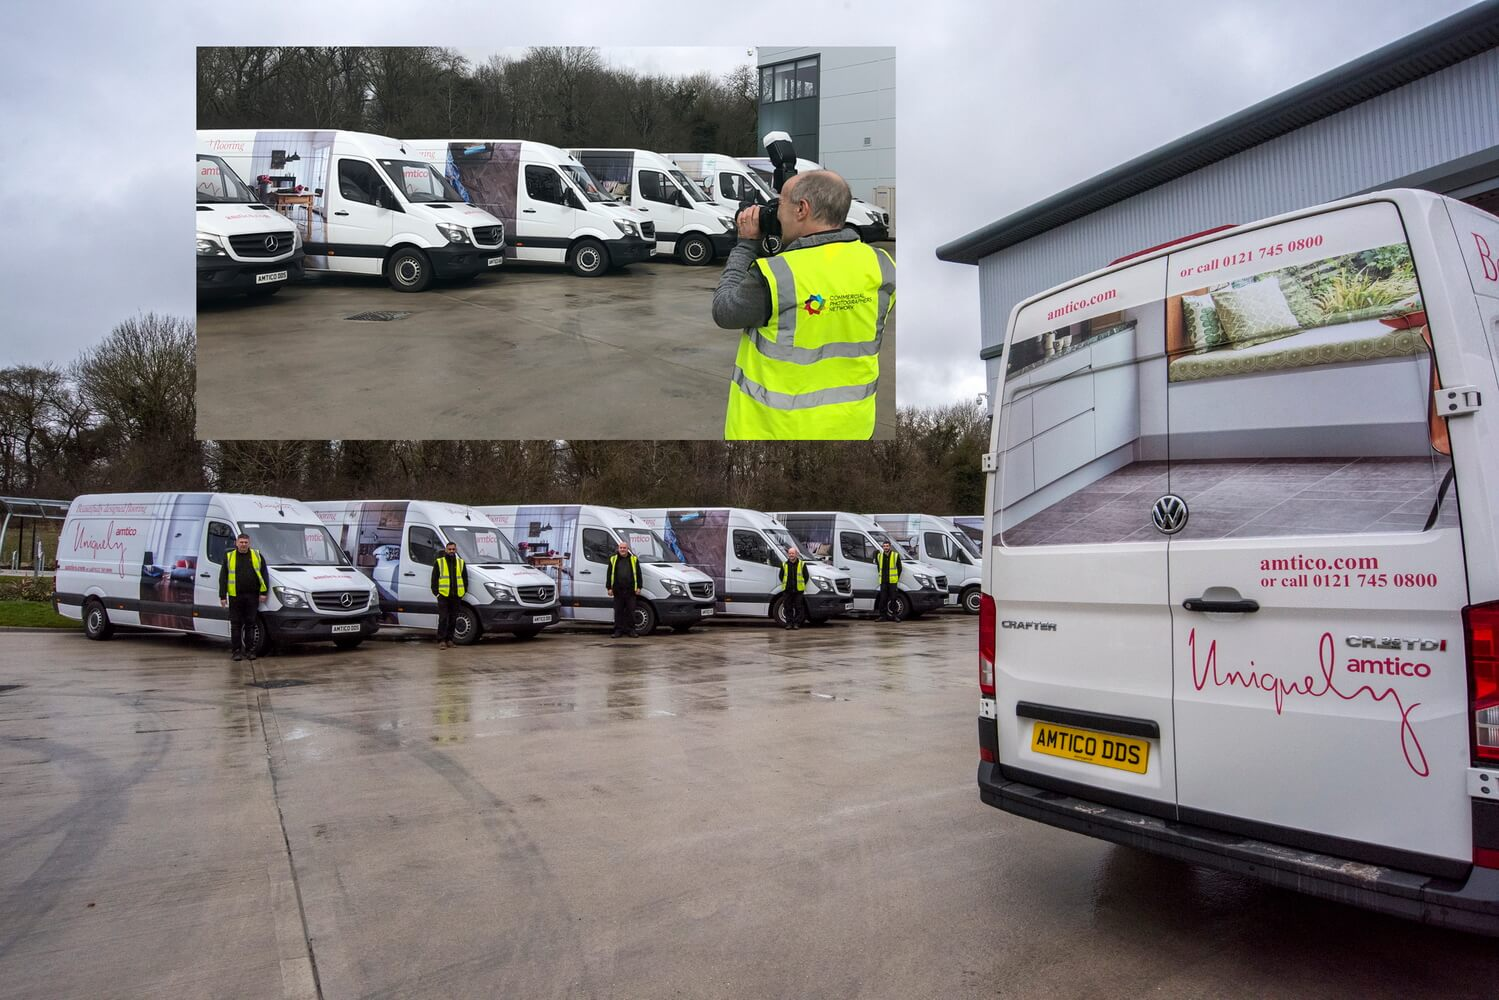 The Fleet of vehicles at Amtico International, Coventry. Drivers - Start your engines!